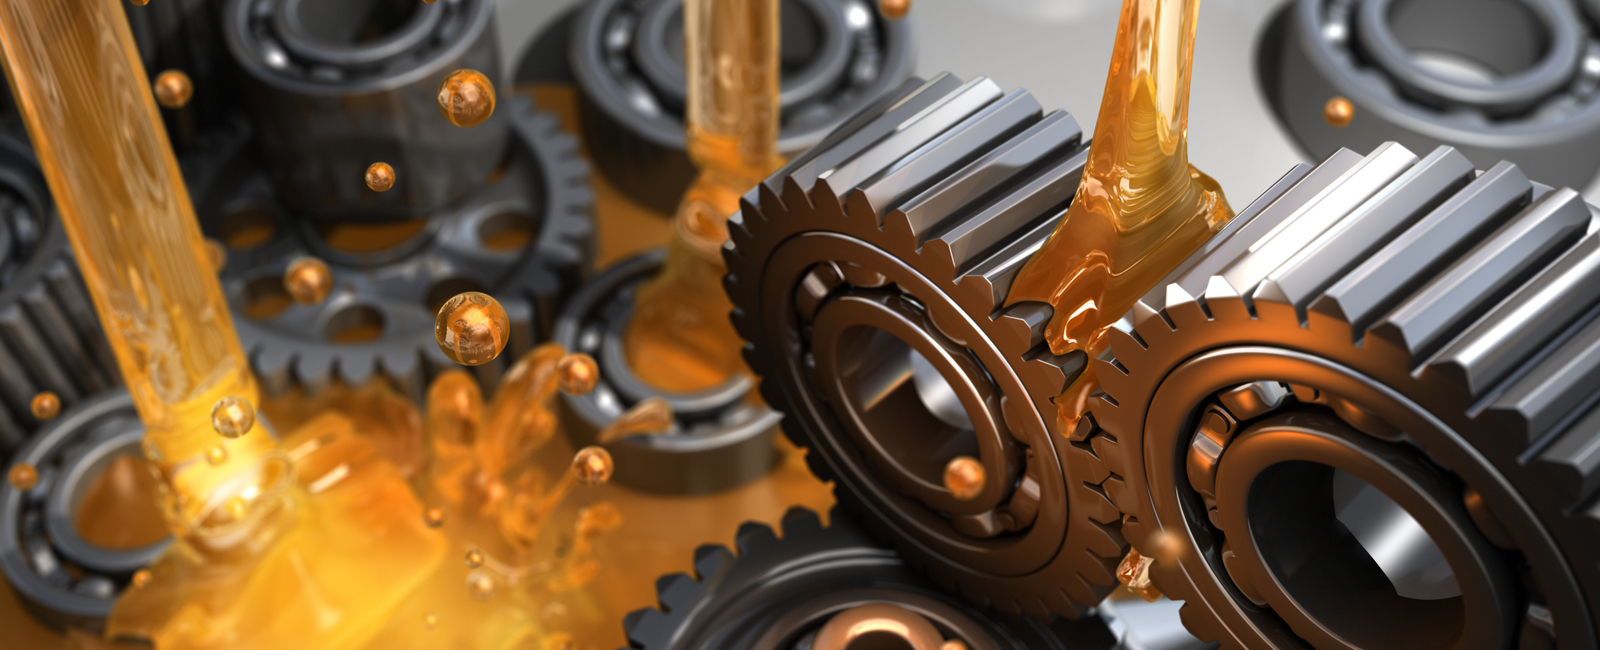 Lubricants banner image